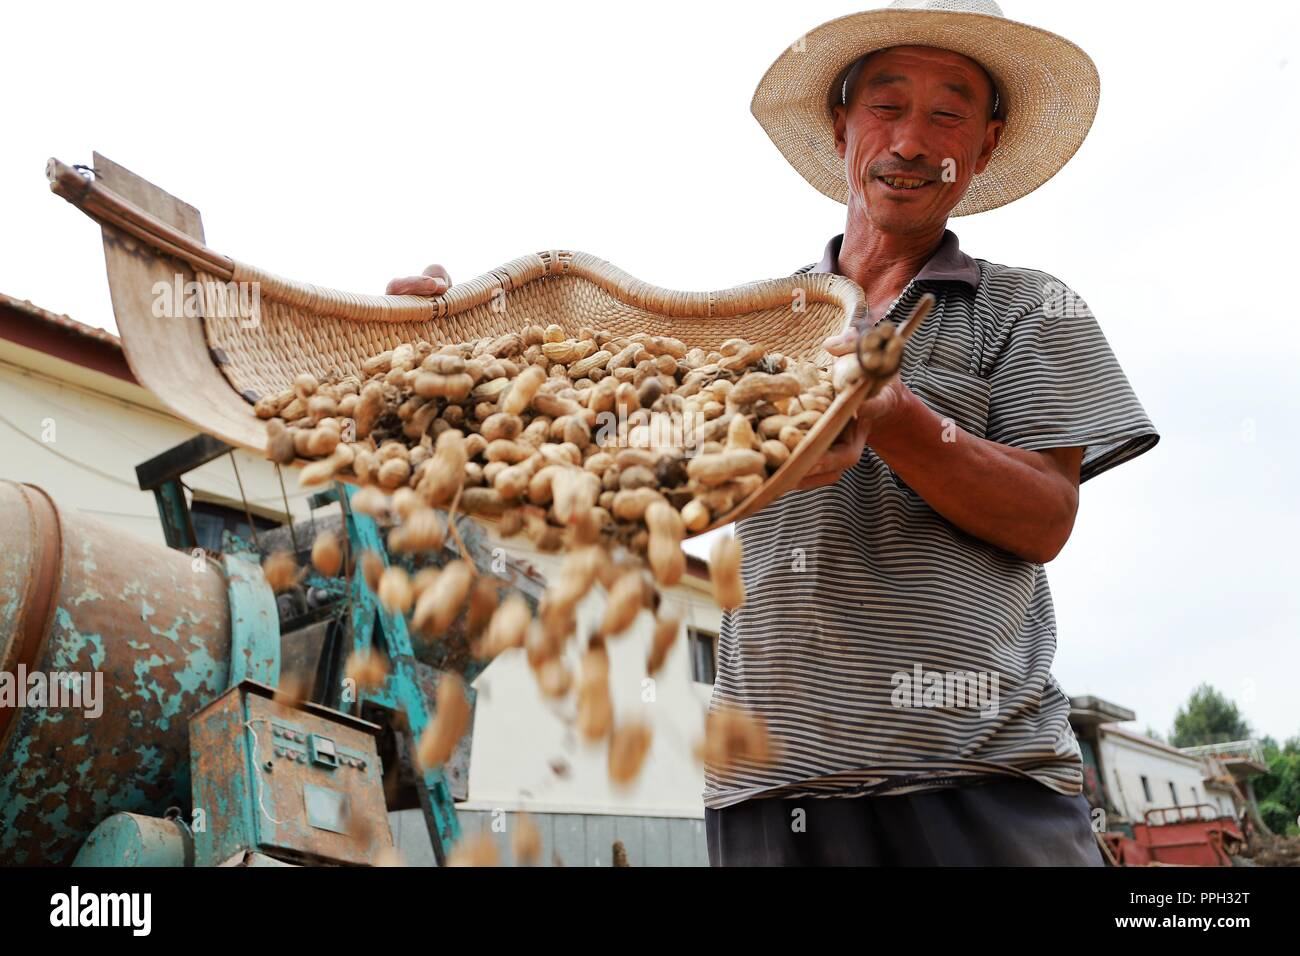 Qingdao, China's Shandong Province. 25th Sep, 2018. A farmer airs newly-harvested peanuts in Taqiao Village of Qingdao City, east China's Shandong Province, Sept. 25, 2018. Credit: Wang Peike/Xinhua/Alamy Live News - Stock Image